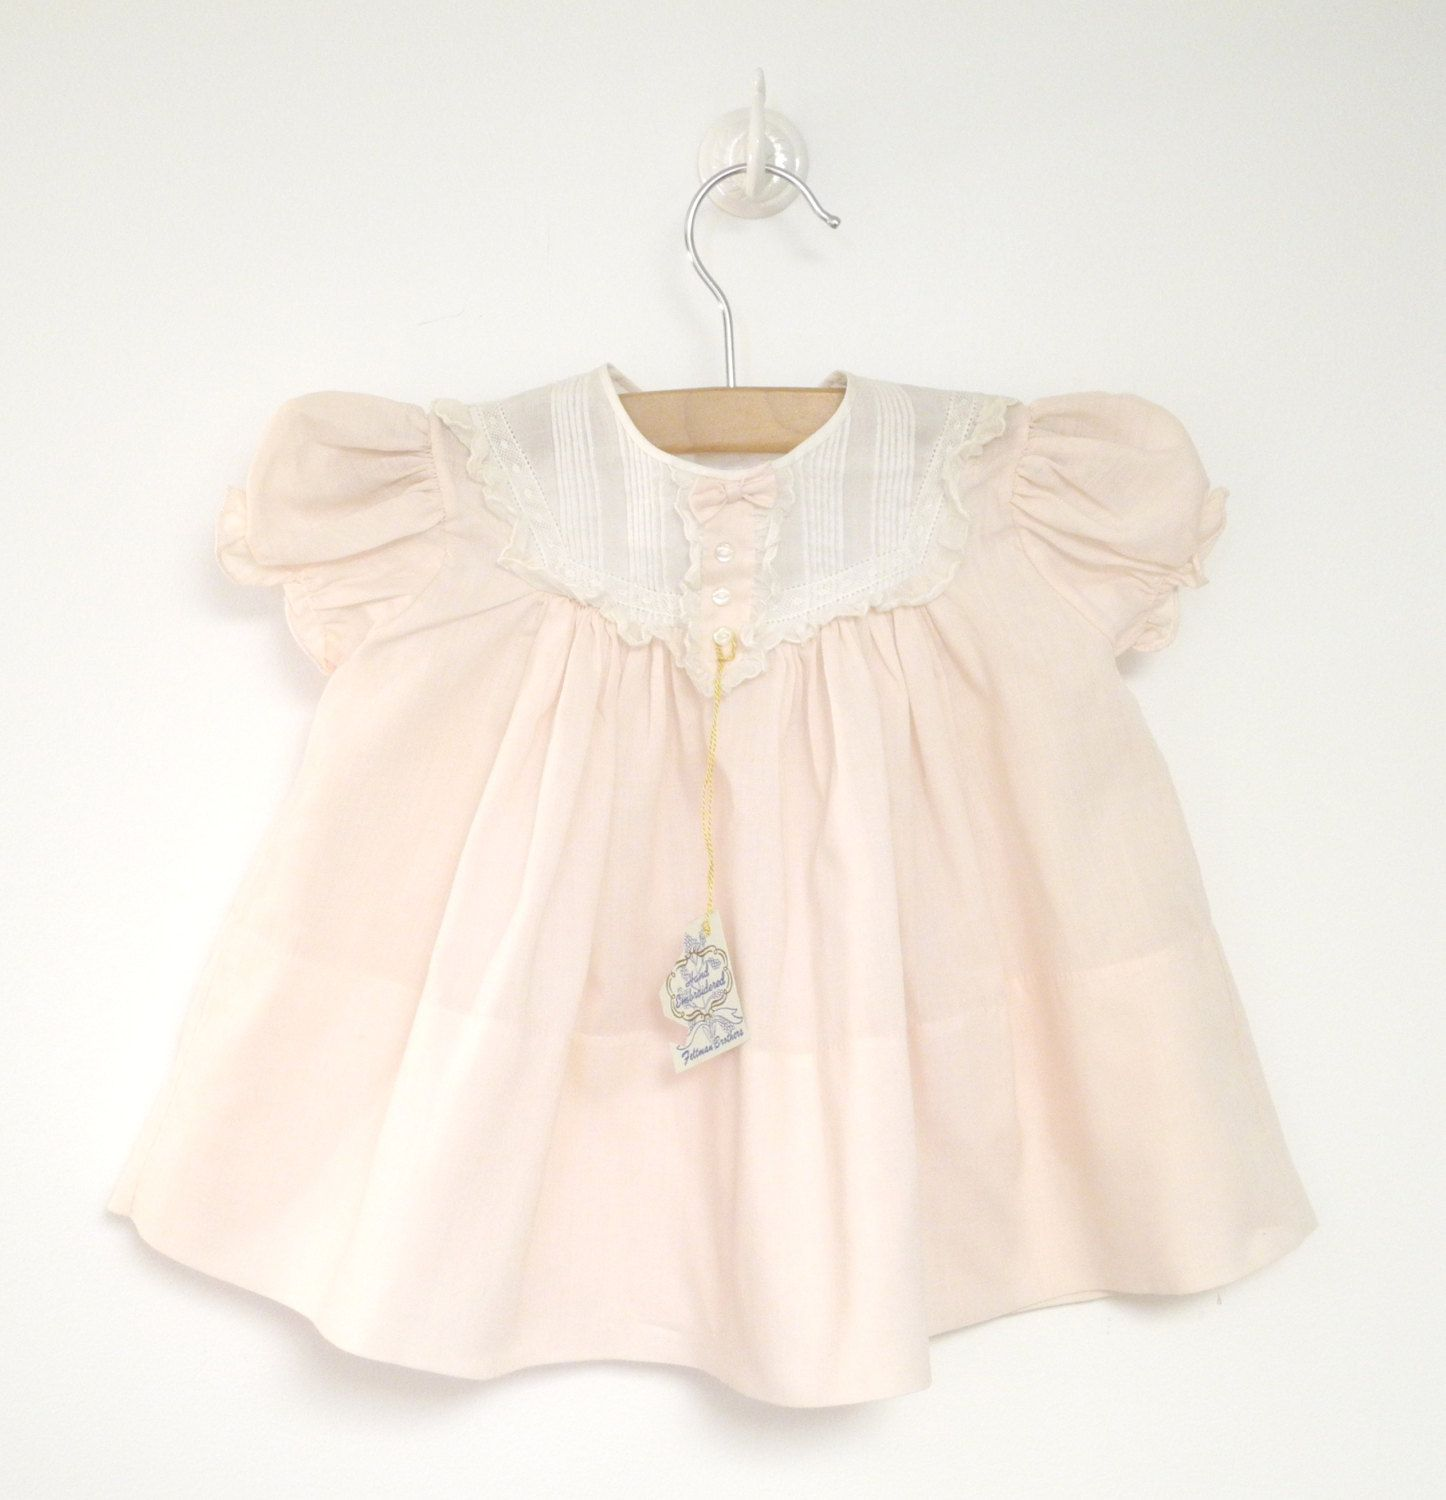 Vintage Baby Clothes 1960 s Pale Pink and White by BabyTweeds